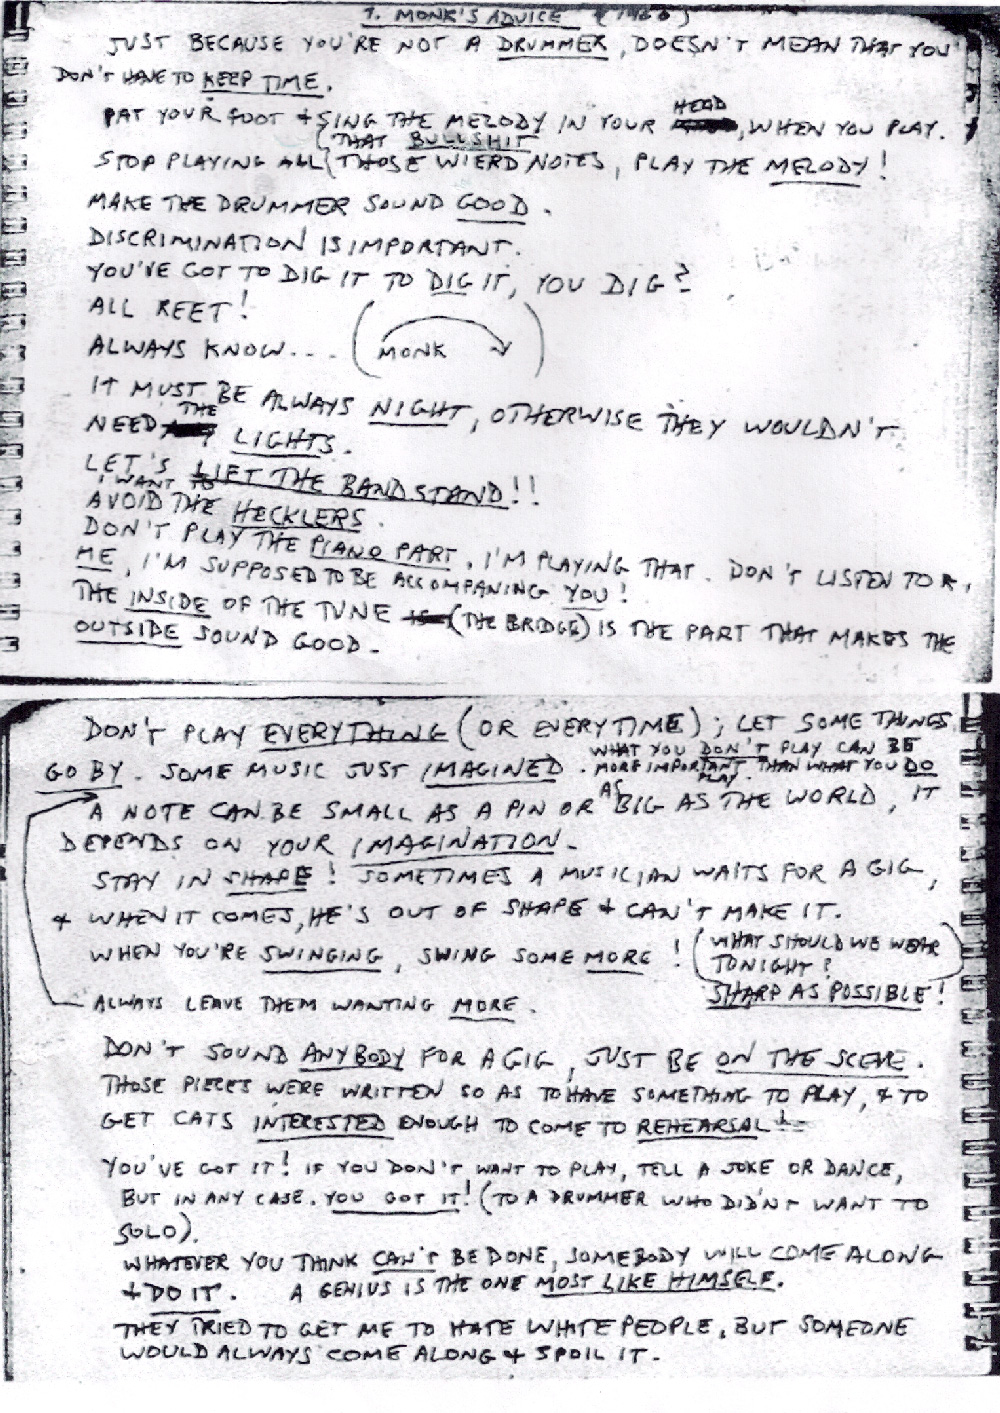 T. Monk's Advice 1960   .   This list was transcribed by saxophonist  Steve Lacy  in 1960. The advice came from legendary pianist and band-leader  Thelonious Monk . 30 years after his death, Monk's advice holds up. Certainly as a musician, this list is relevant. I've found, however, this advice like the  basic rules of improv  is pretty much applicable to all forms of creation, and daily life.   .       Thelonious Monk 1960